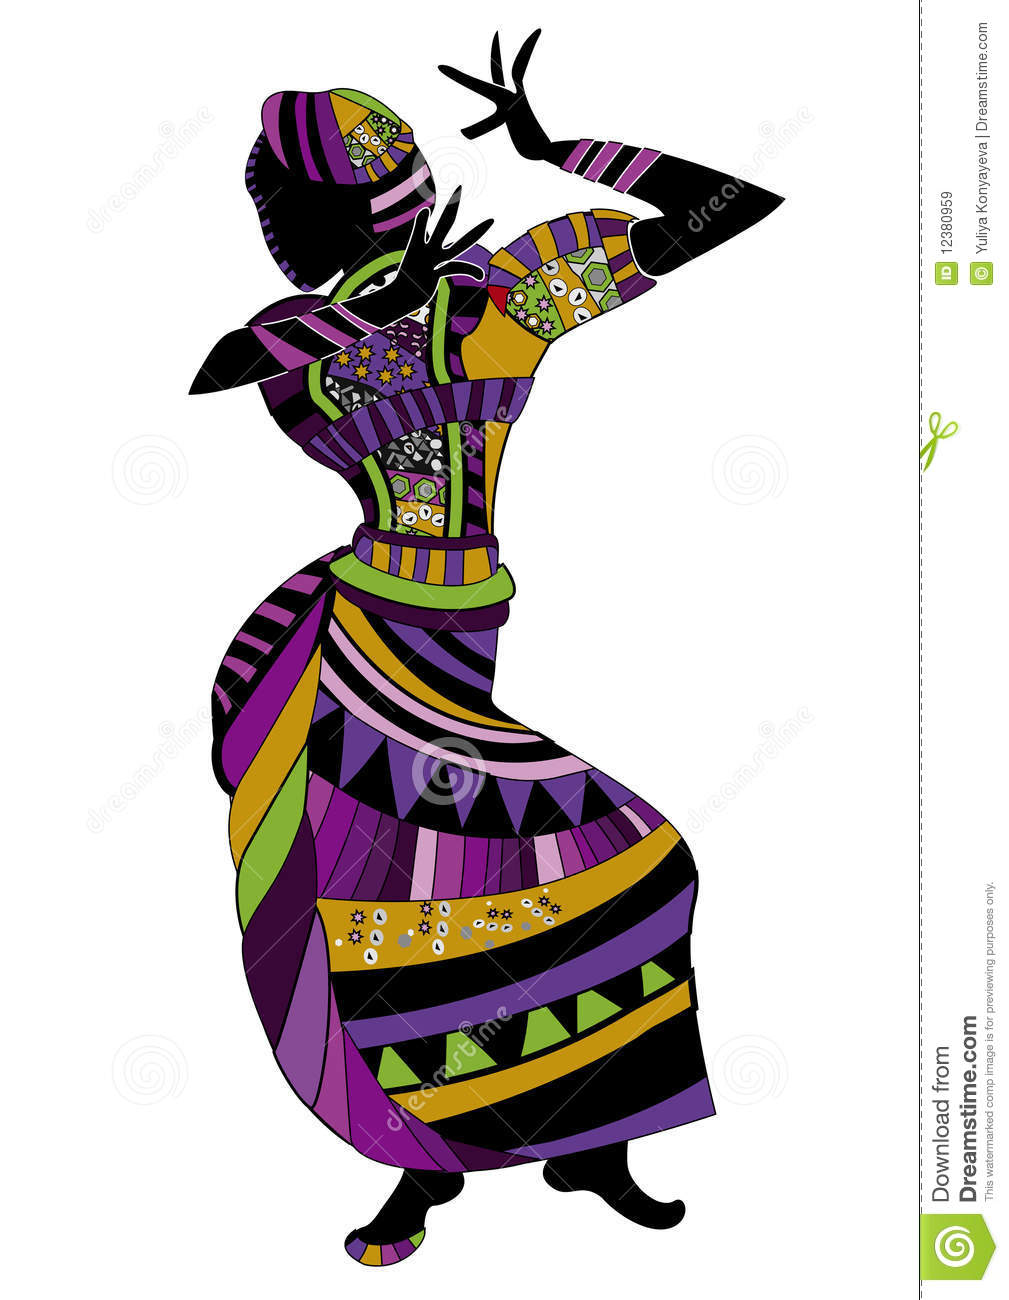 Traditional dance clipart jpg freeuse library Traditional dance clipart - ClipartFest jpg freeuse library